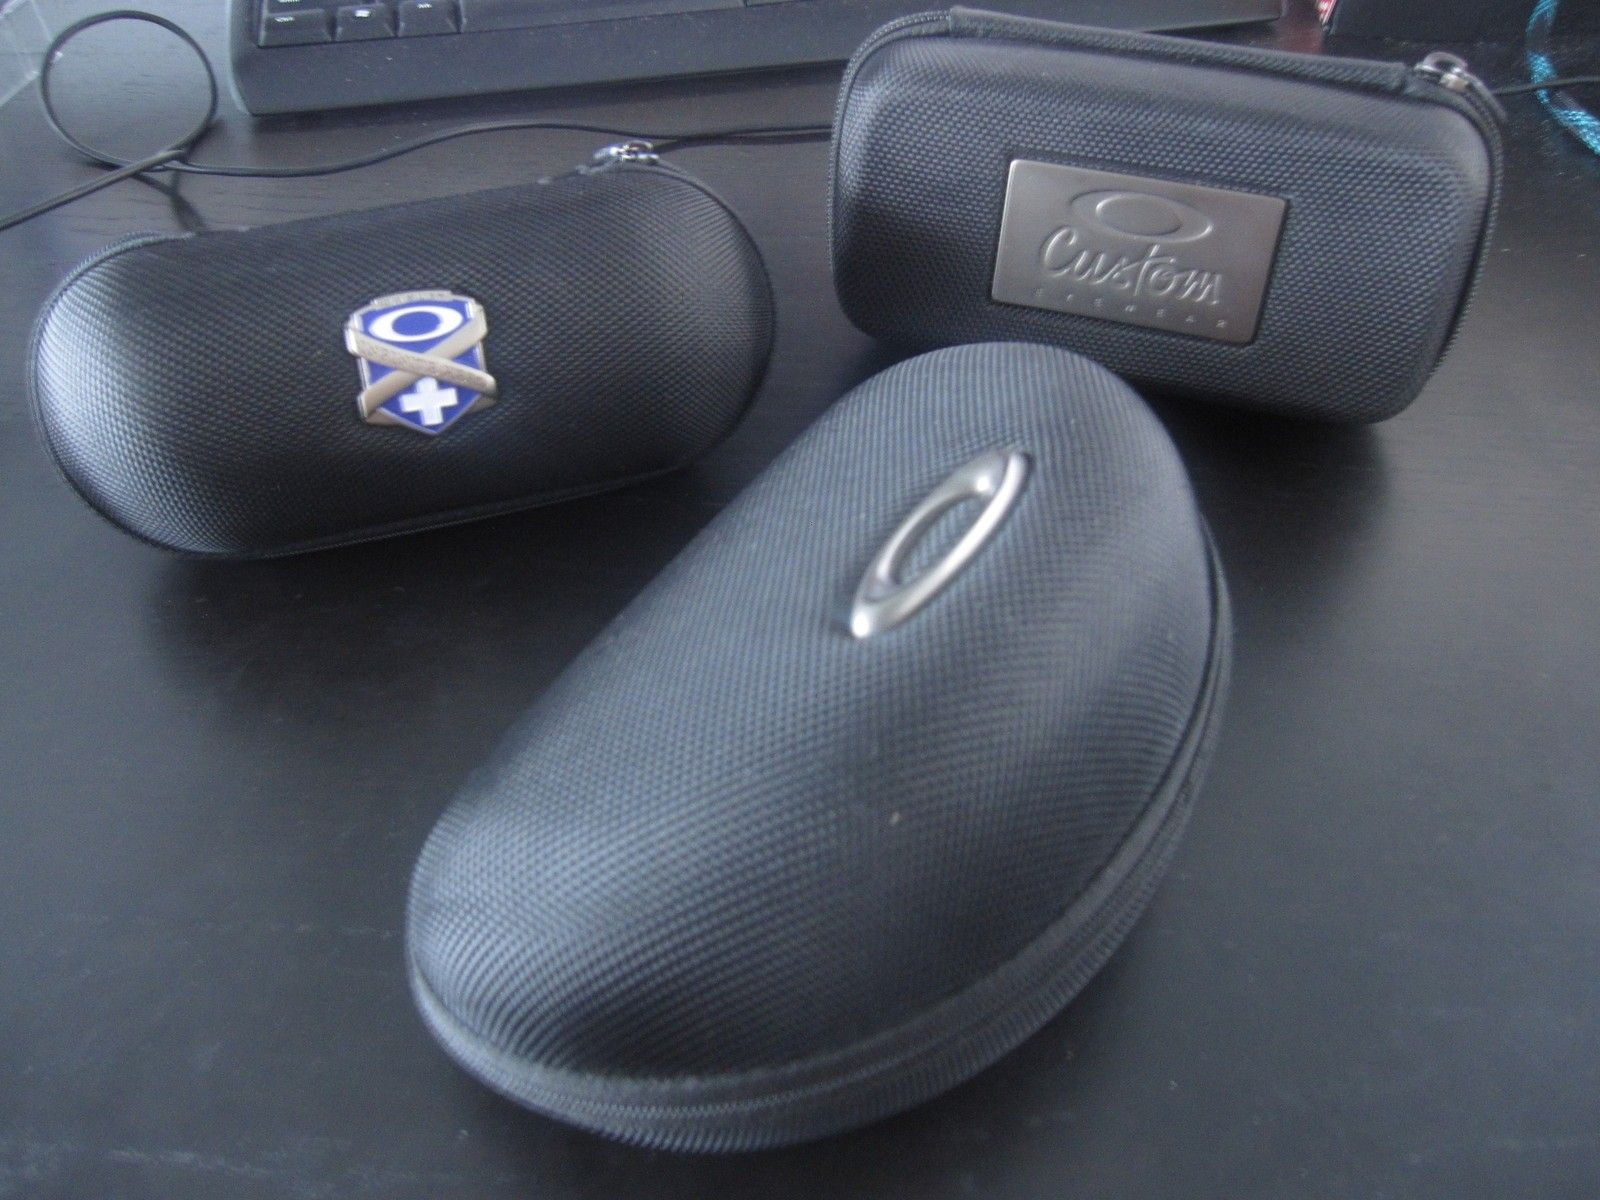 Cases for sale - All in like new condition - Price drop - IMG_2647.JPG